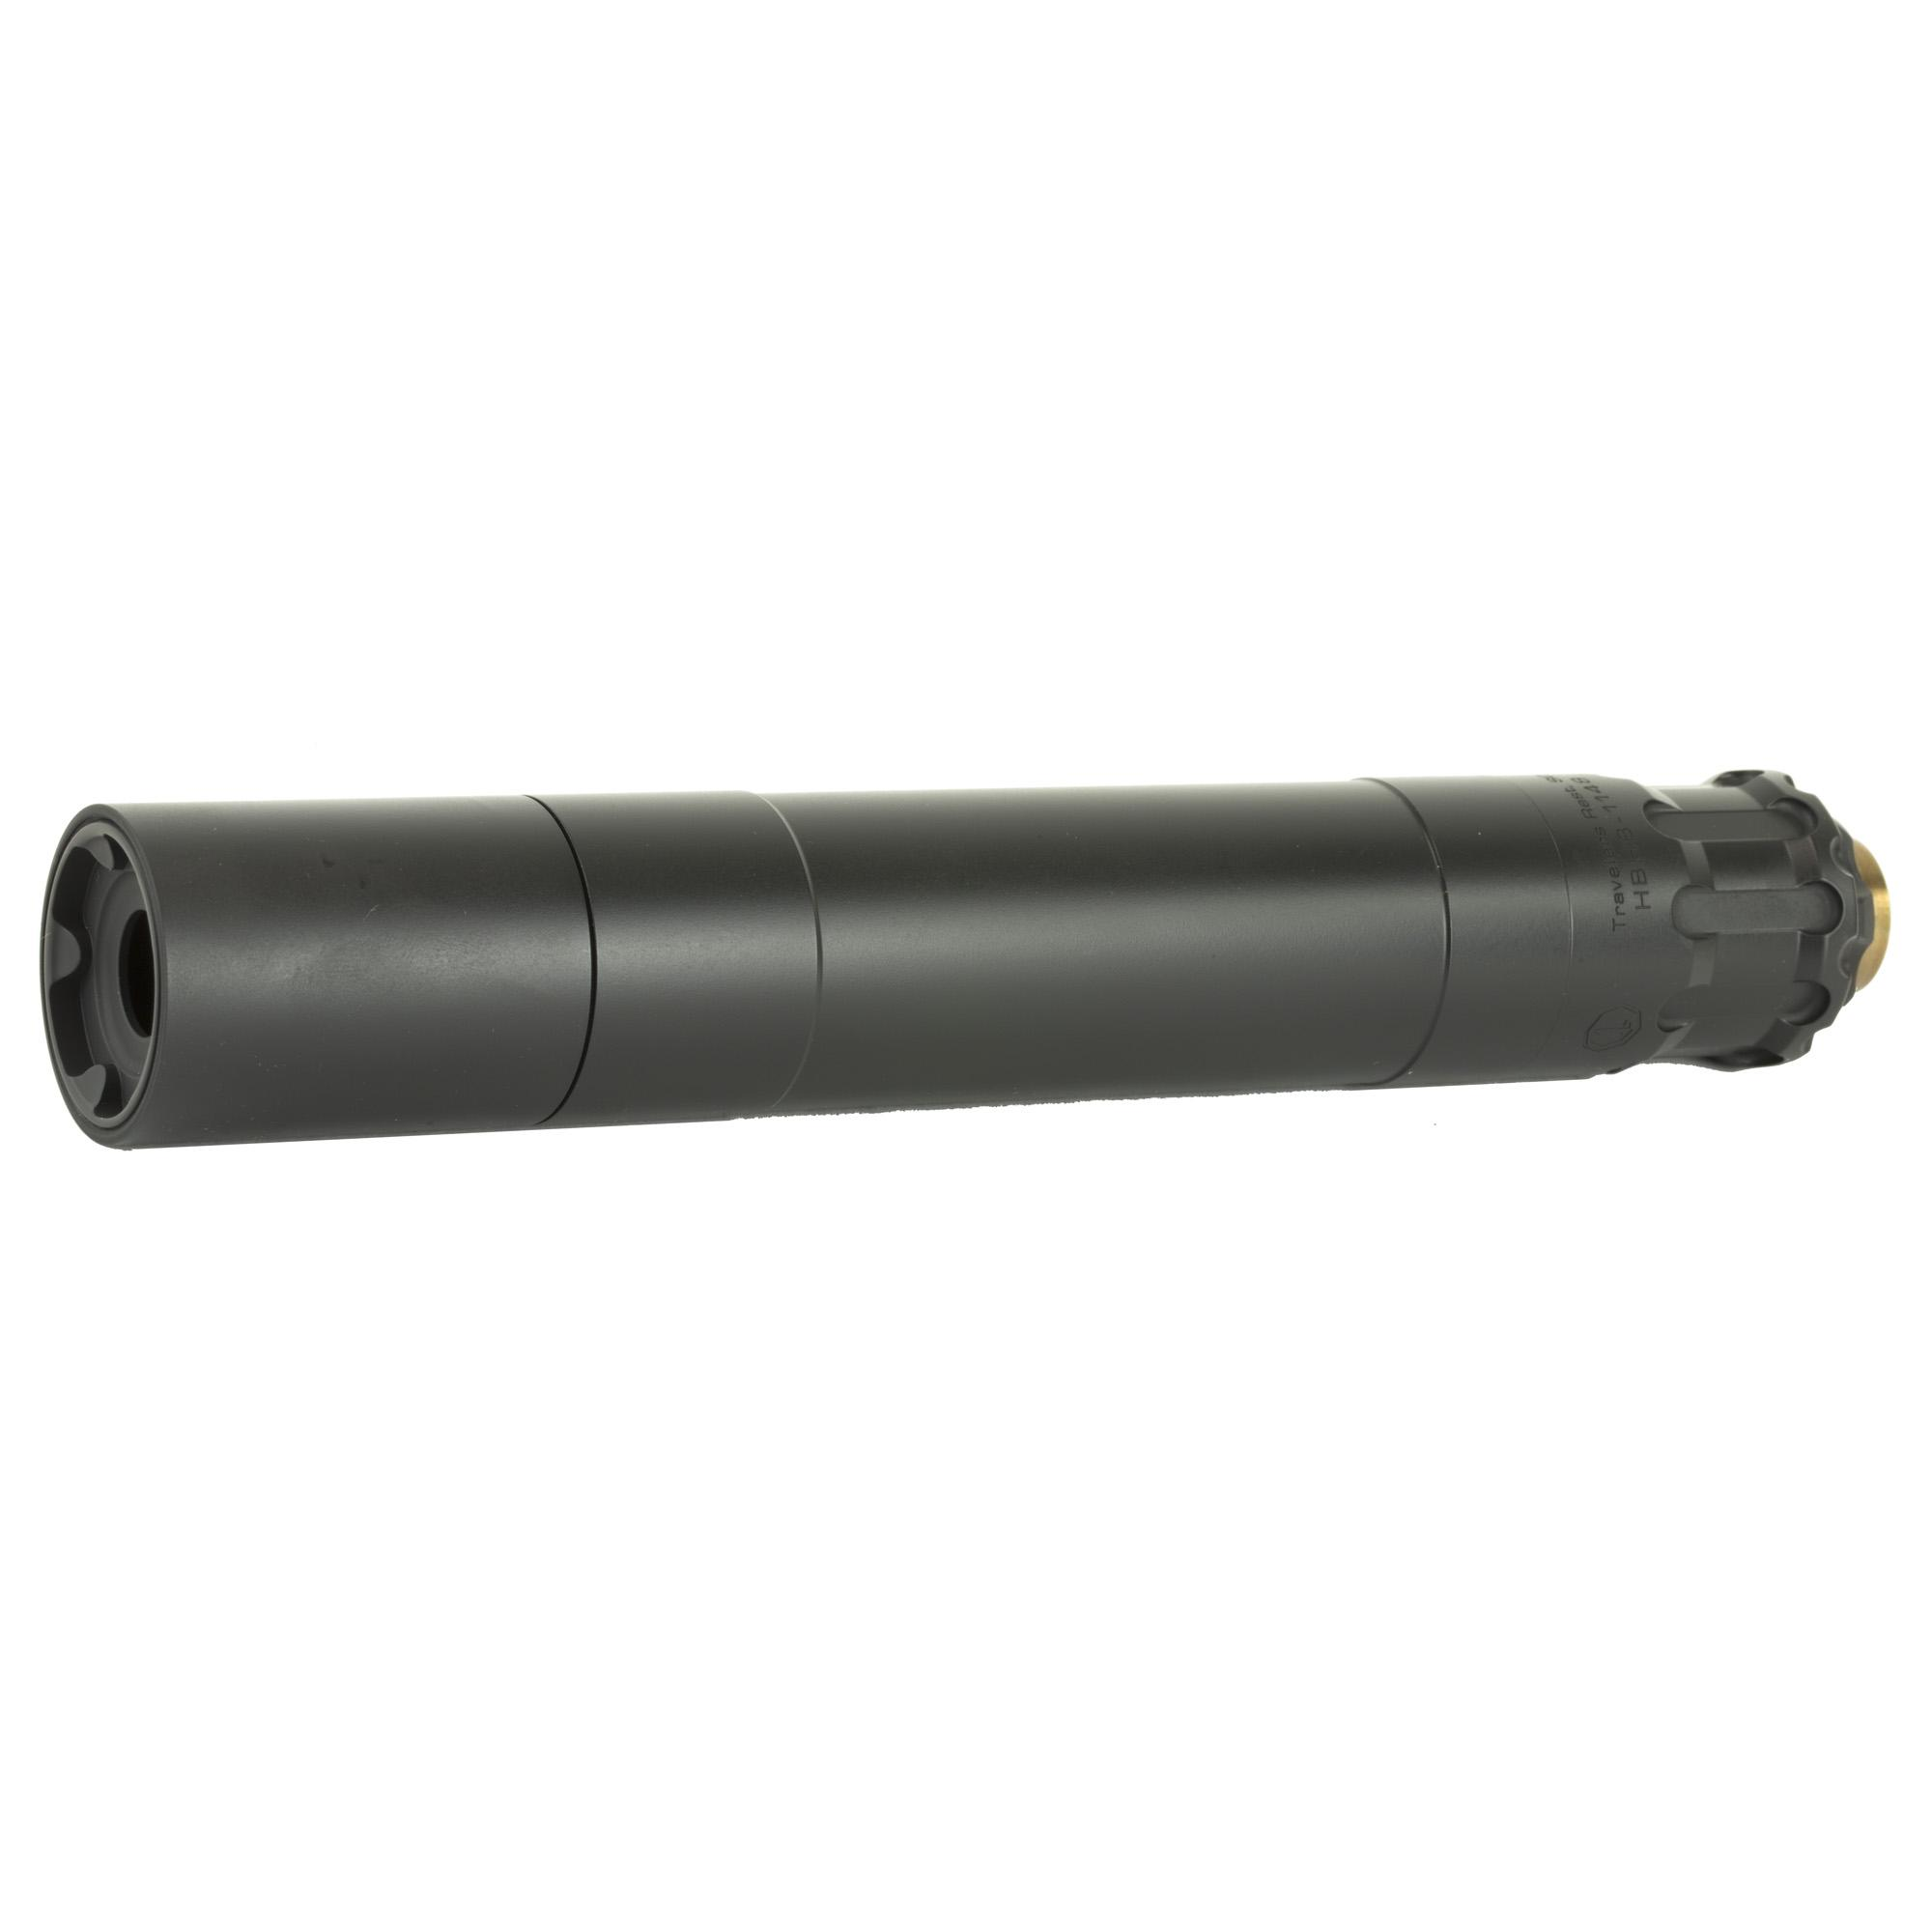 Rugged Obsidian 45 Suppressor